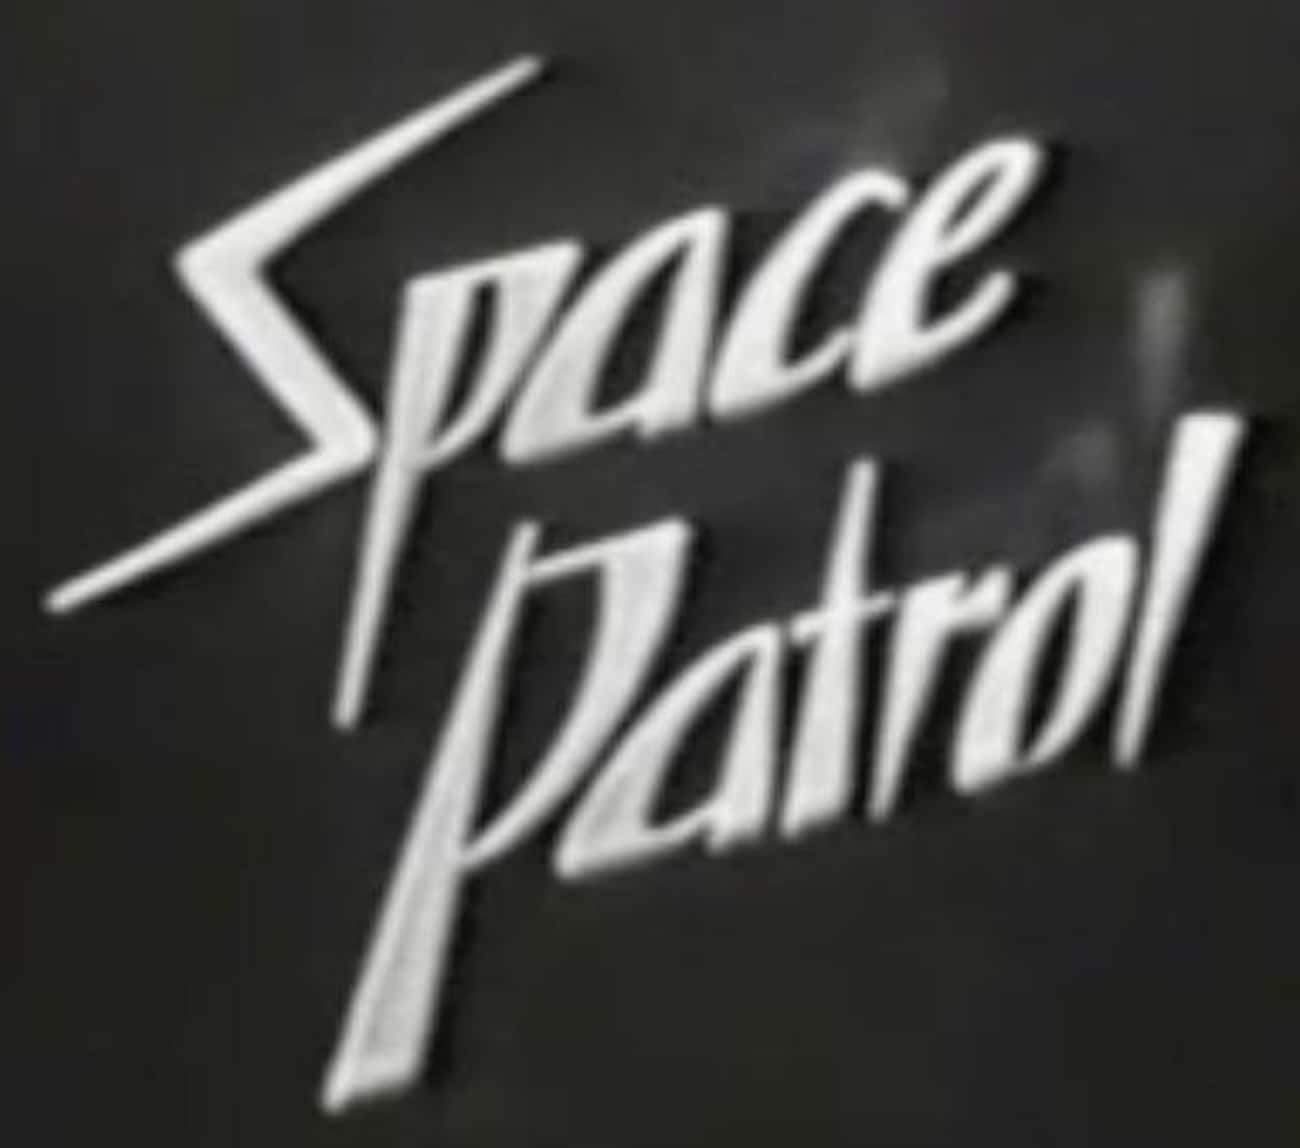 Space Patrol is listed (or ranked) 1 on the list Longest Running Sci-Fi TV Shows